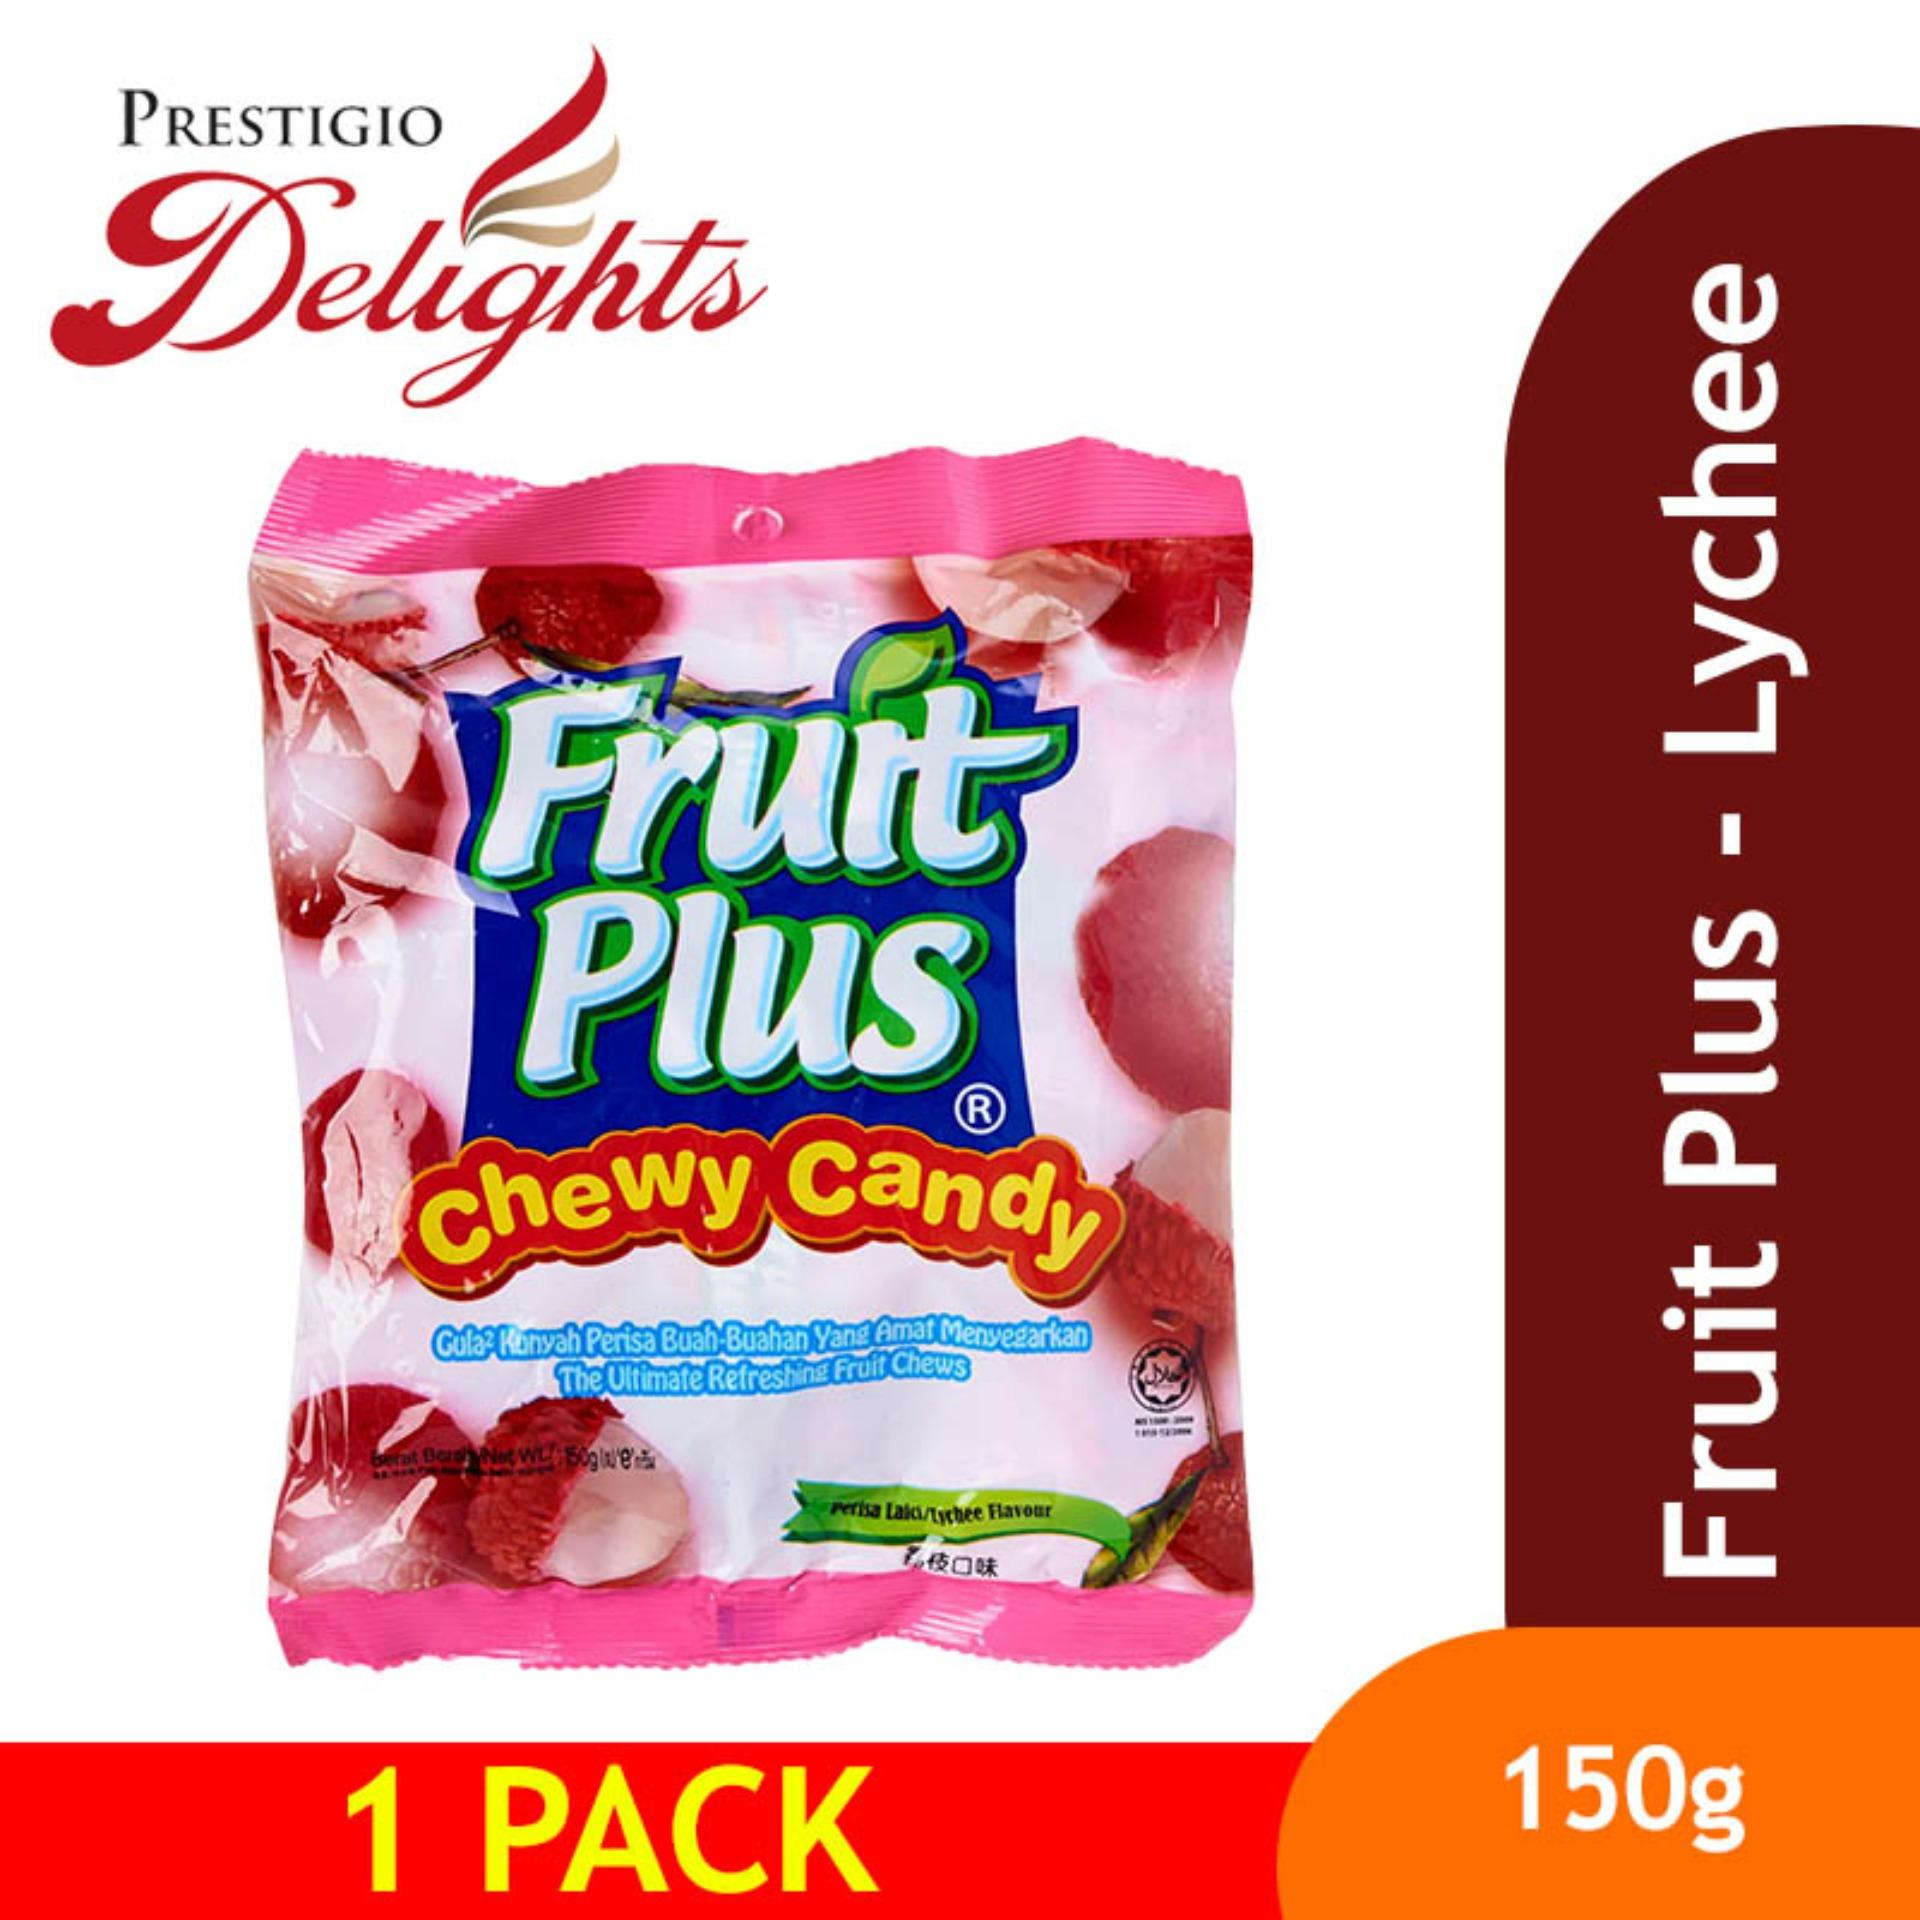 Fruit Plus - Lychee By Prestigio Delights.